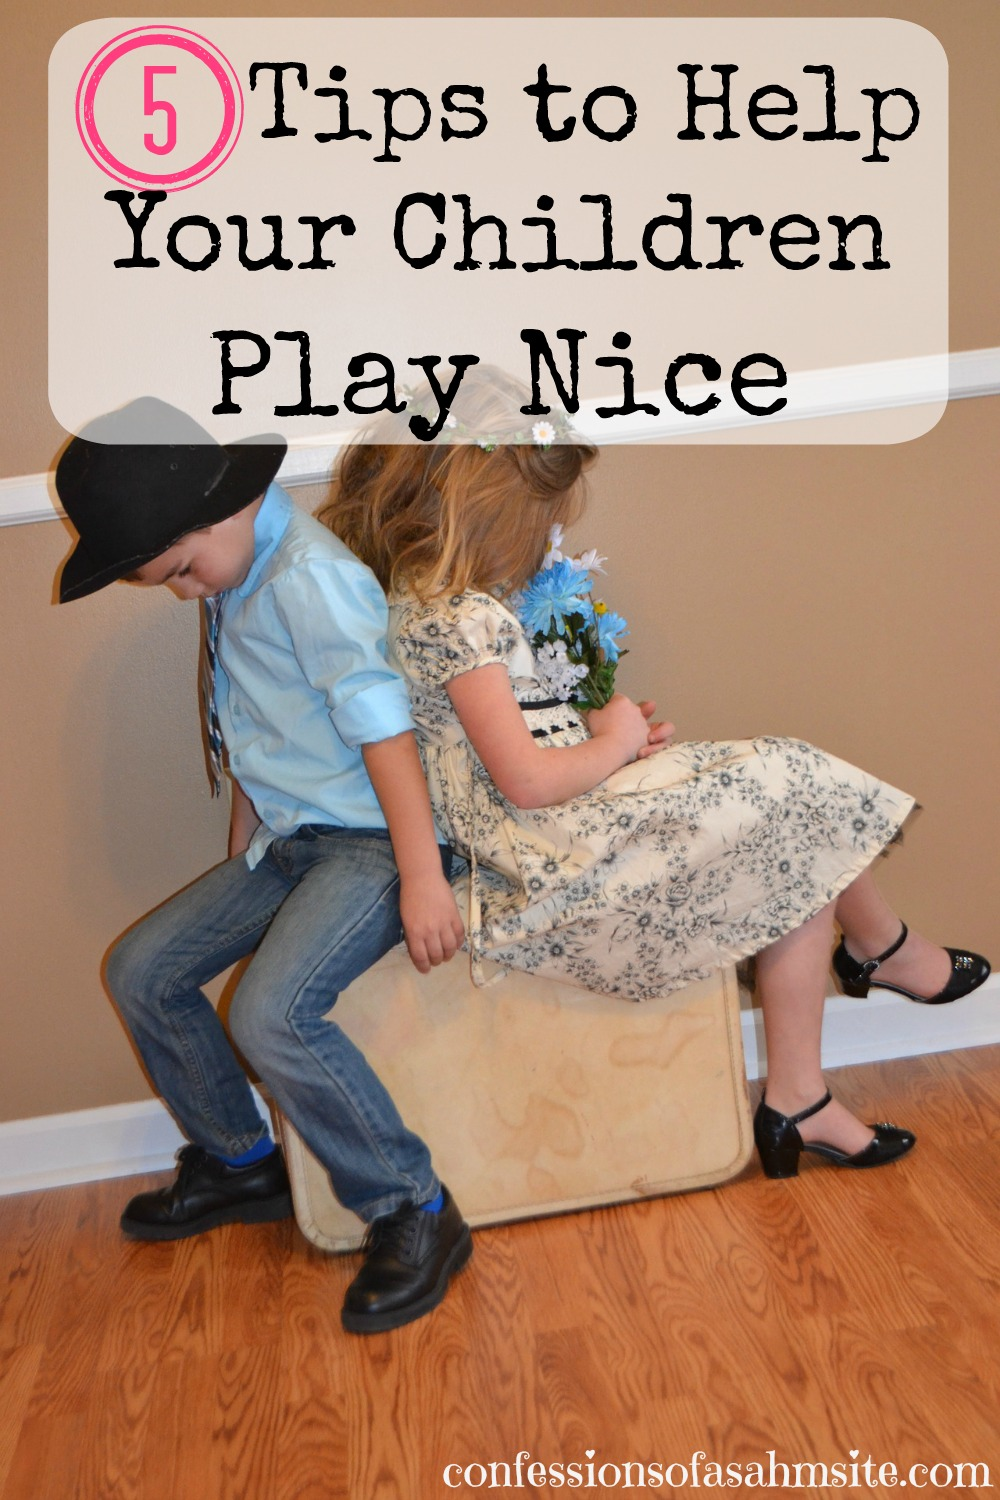 5 Tips To Help Your Children Play Nice. Just what I needed to read! Always a hard time with my kids fighting. Great tips, especially number 4.